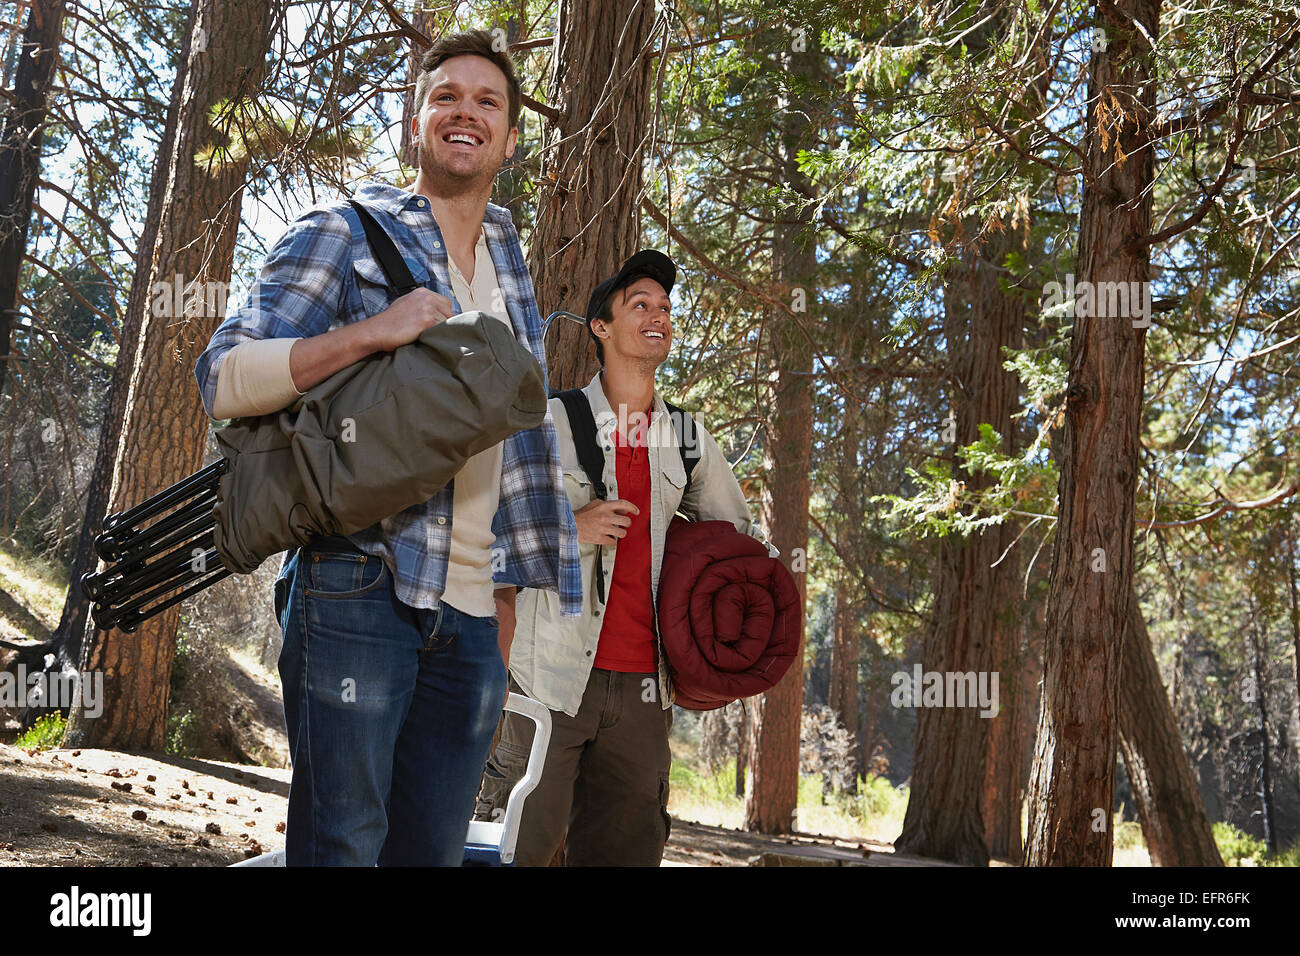 Two Young Men Walking In Forest With Camping Equipment Los Angeles California USA